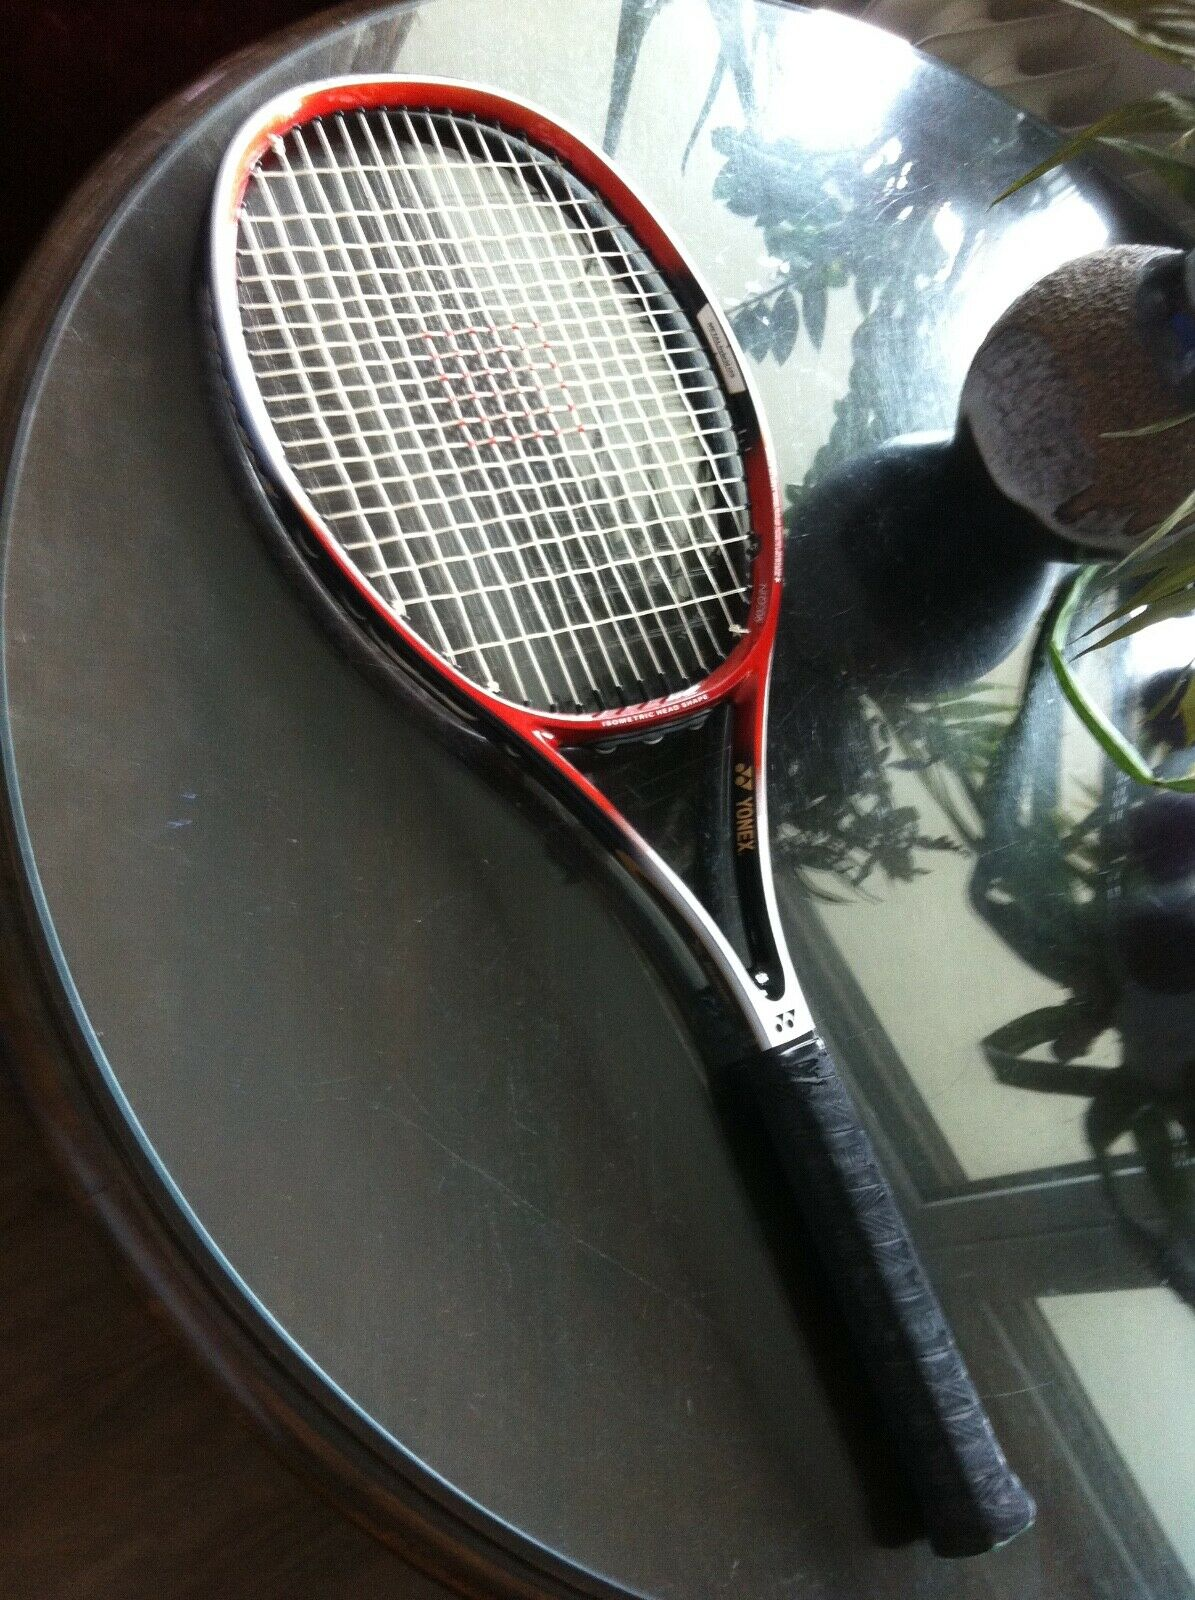 YONEX MP Tour 1 90 Sq in L3 Tennisschläger Racket Isometric Head Shape